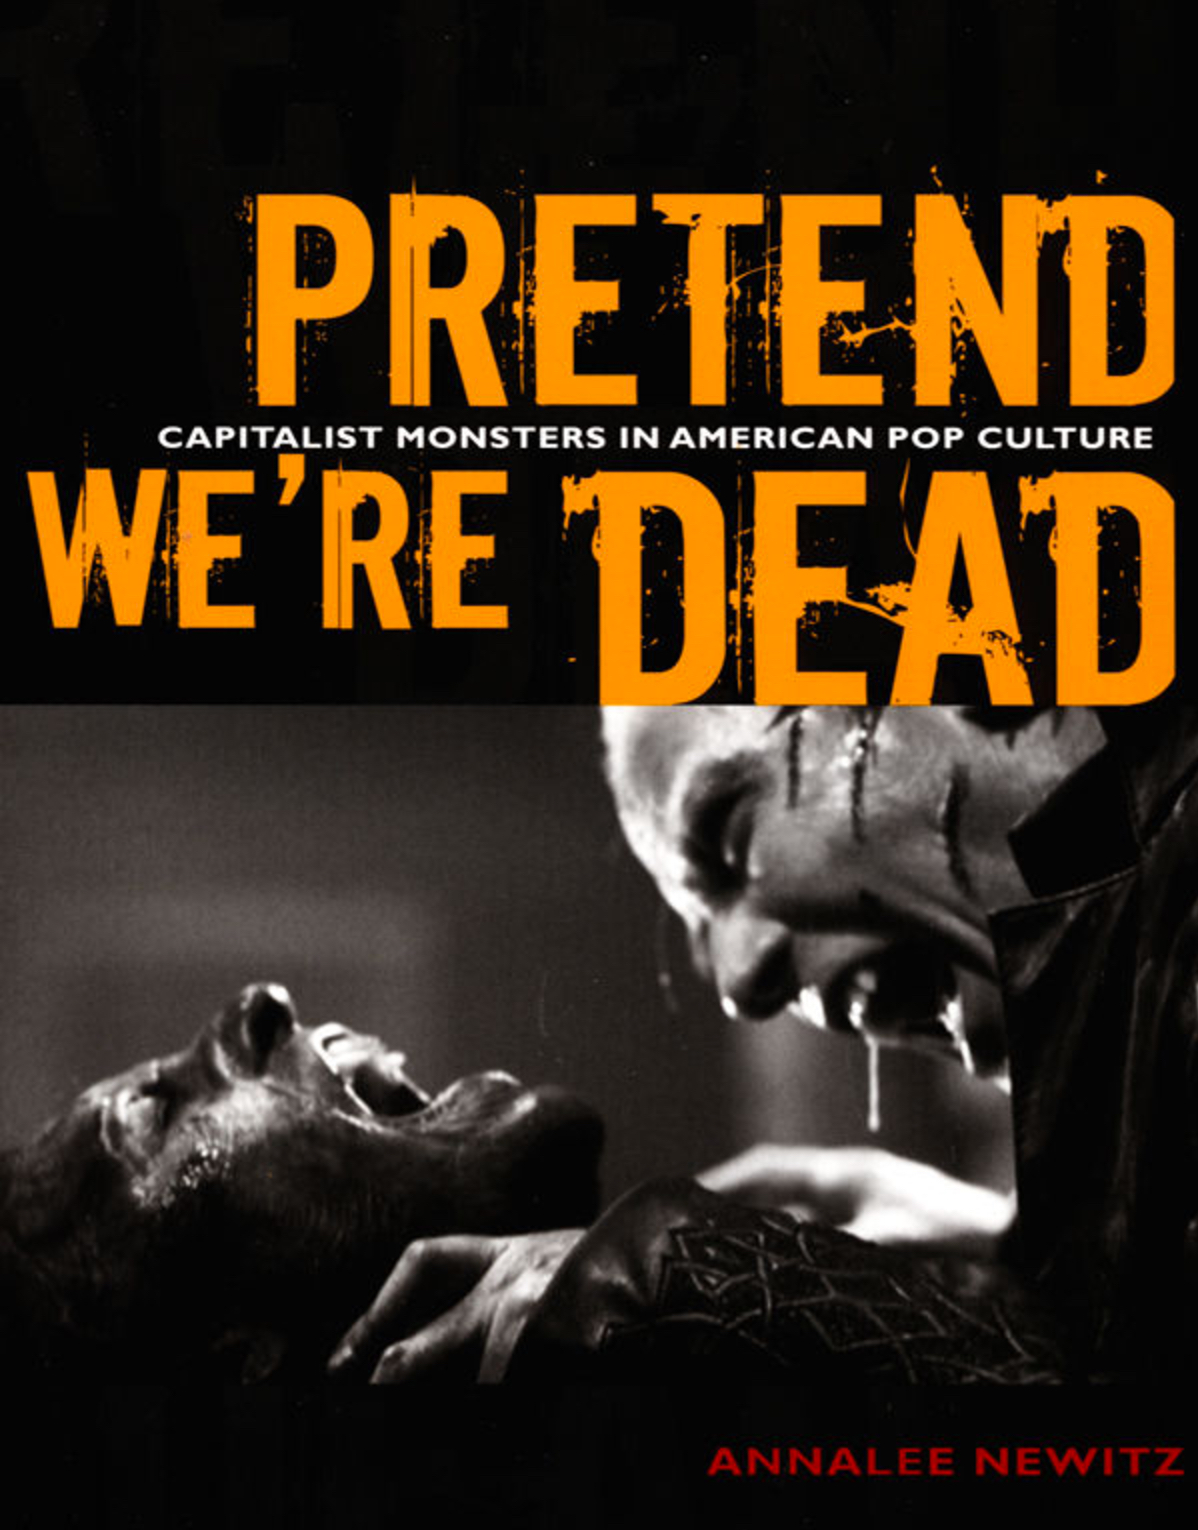 Pretend we're dead - My Ph.D. thesis was about representations of monsters and psychopaths in 20th century American pop culture. I focused on a few character tropes, including the mad scientist, the zombie, and the cyborg, and traced how stories about them changed over a hundred-year arc. In 2006, Duke University Press published a much-improved version of my dissertation in the form of a book.